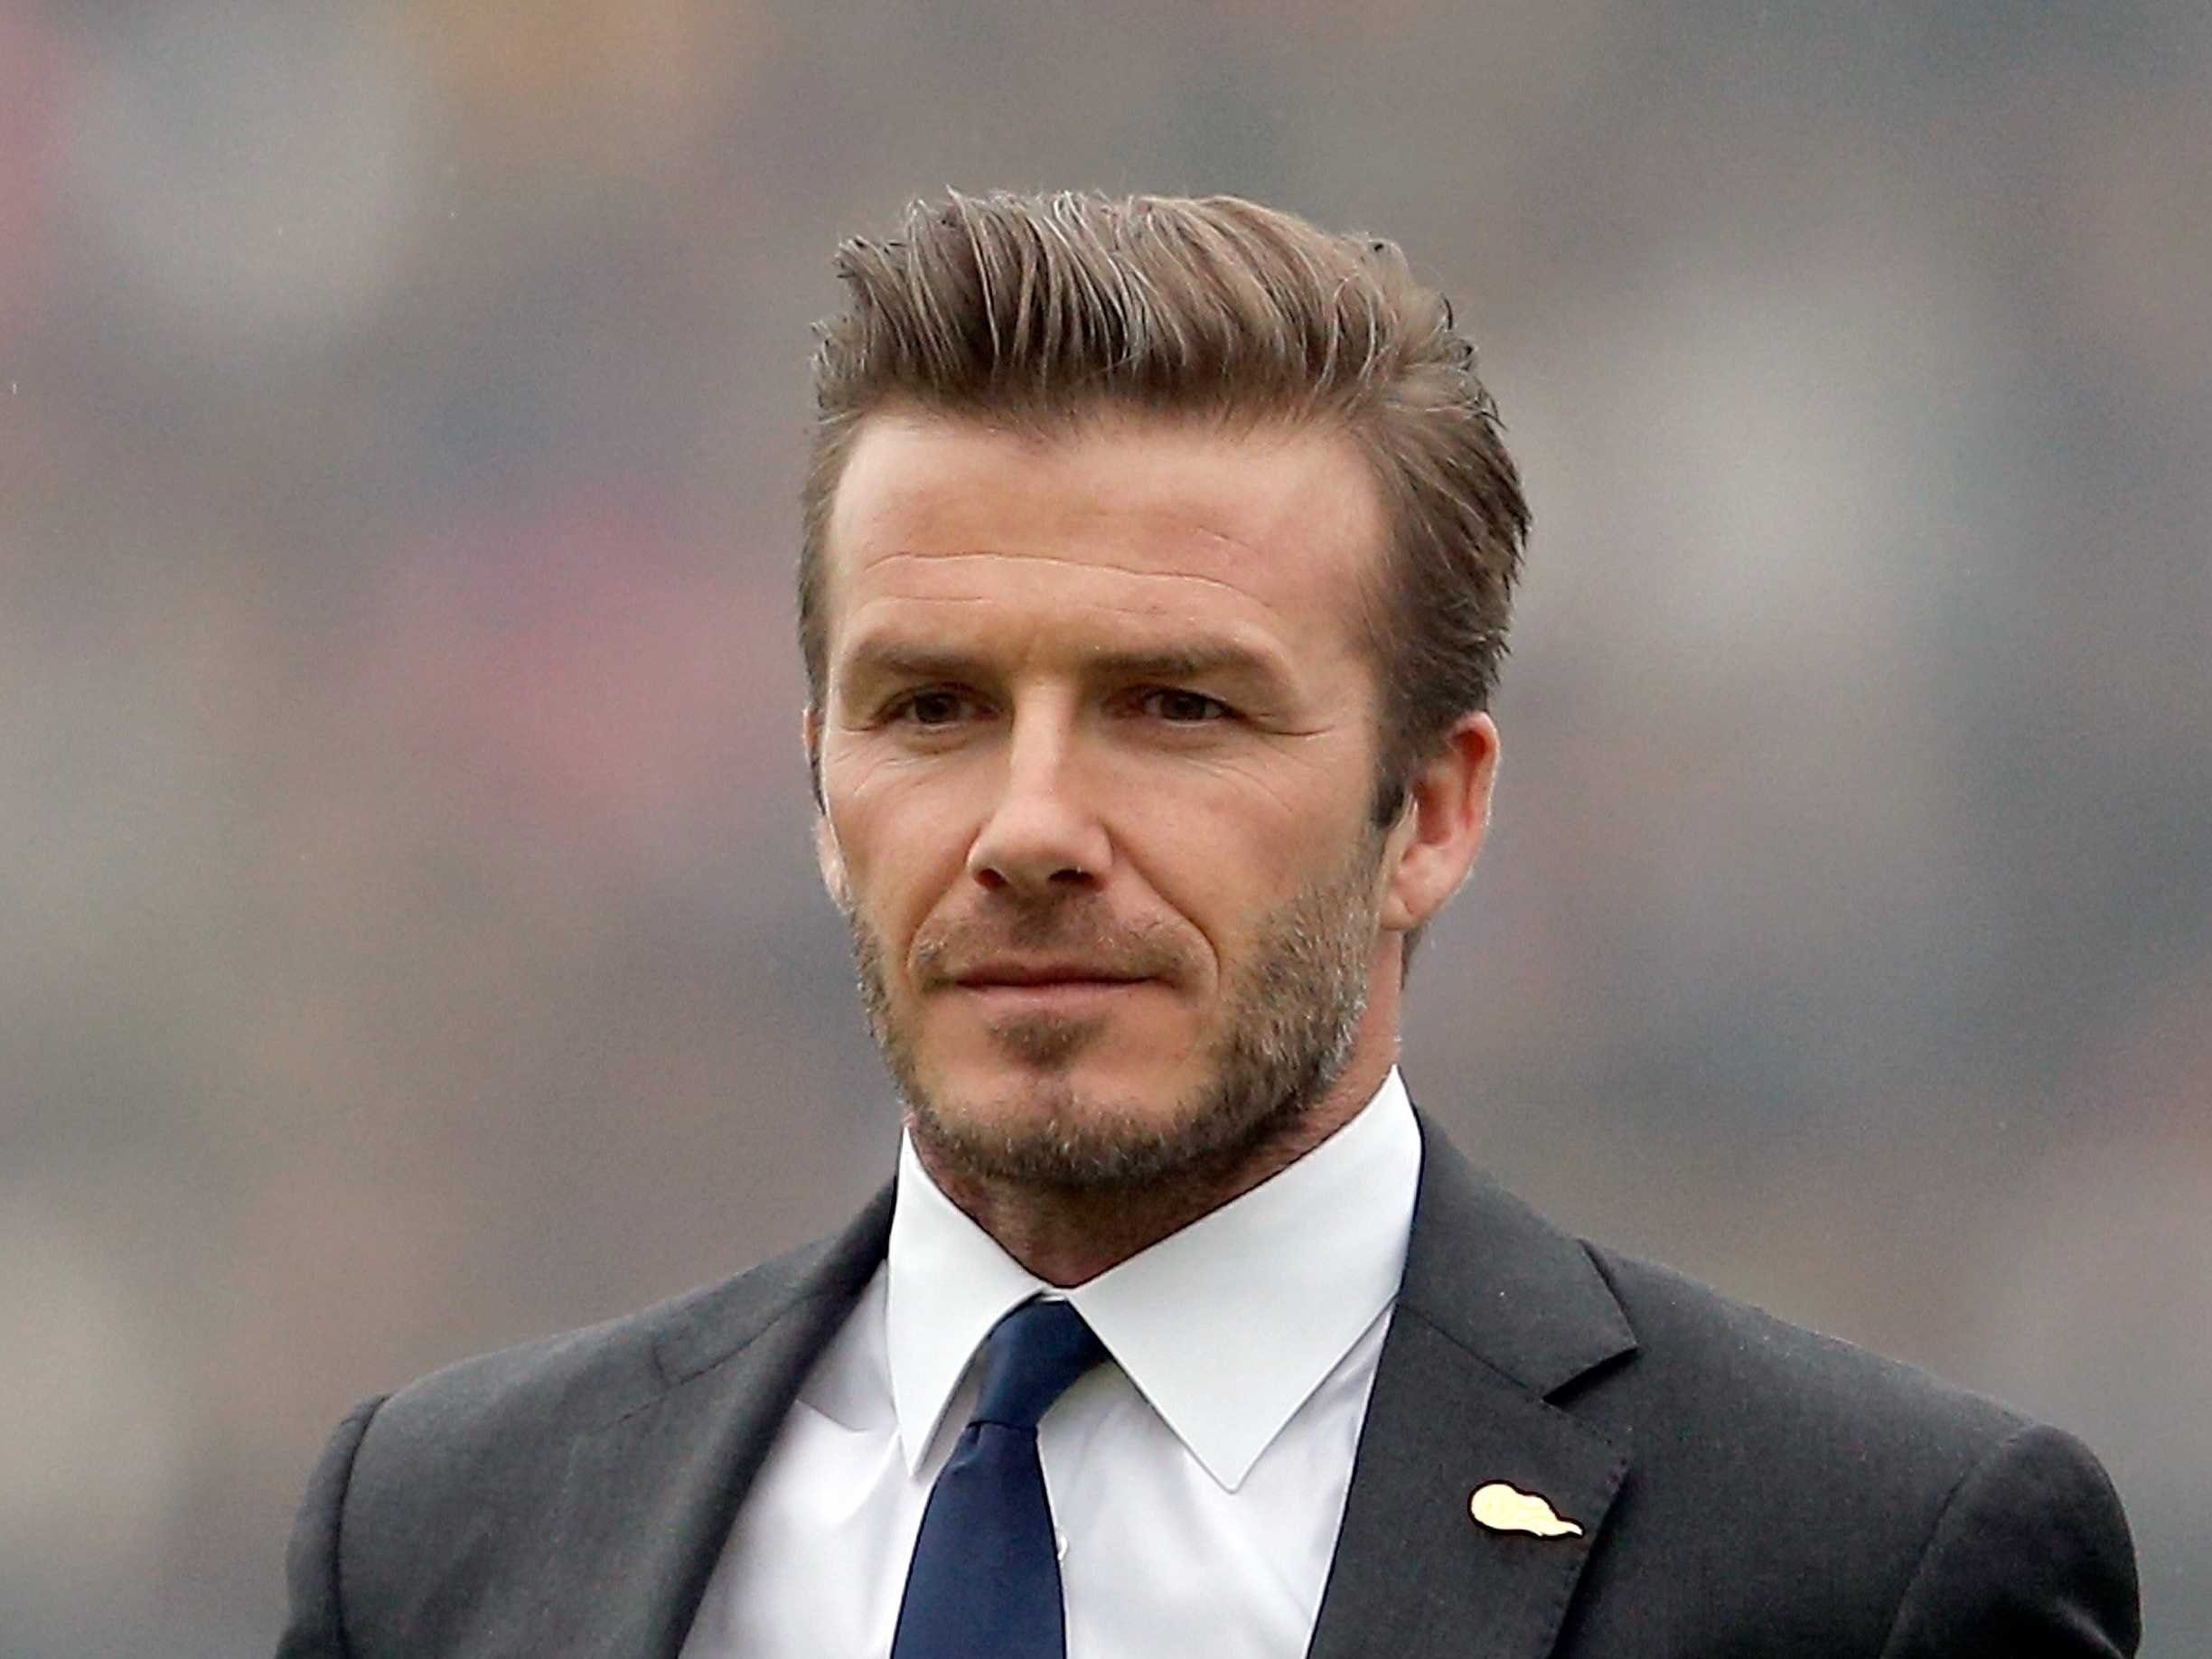 David Beckham had car accident with his son